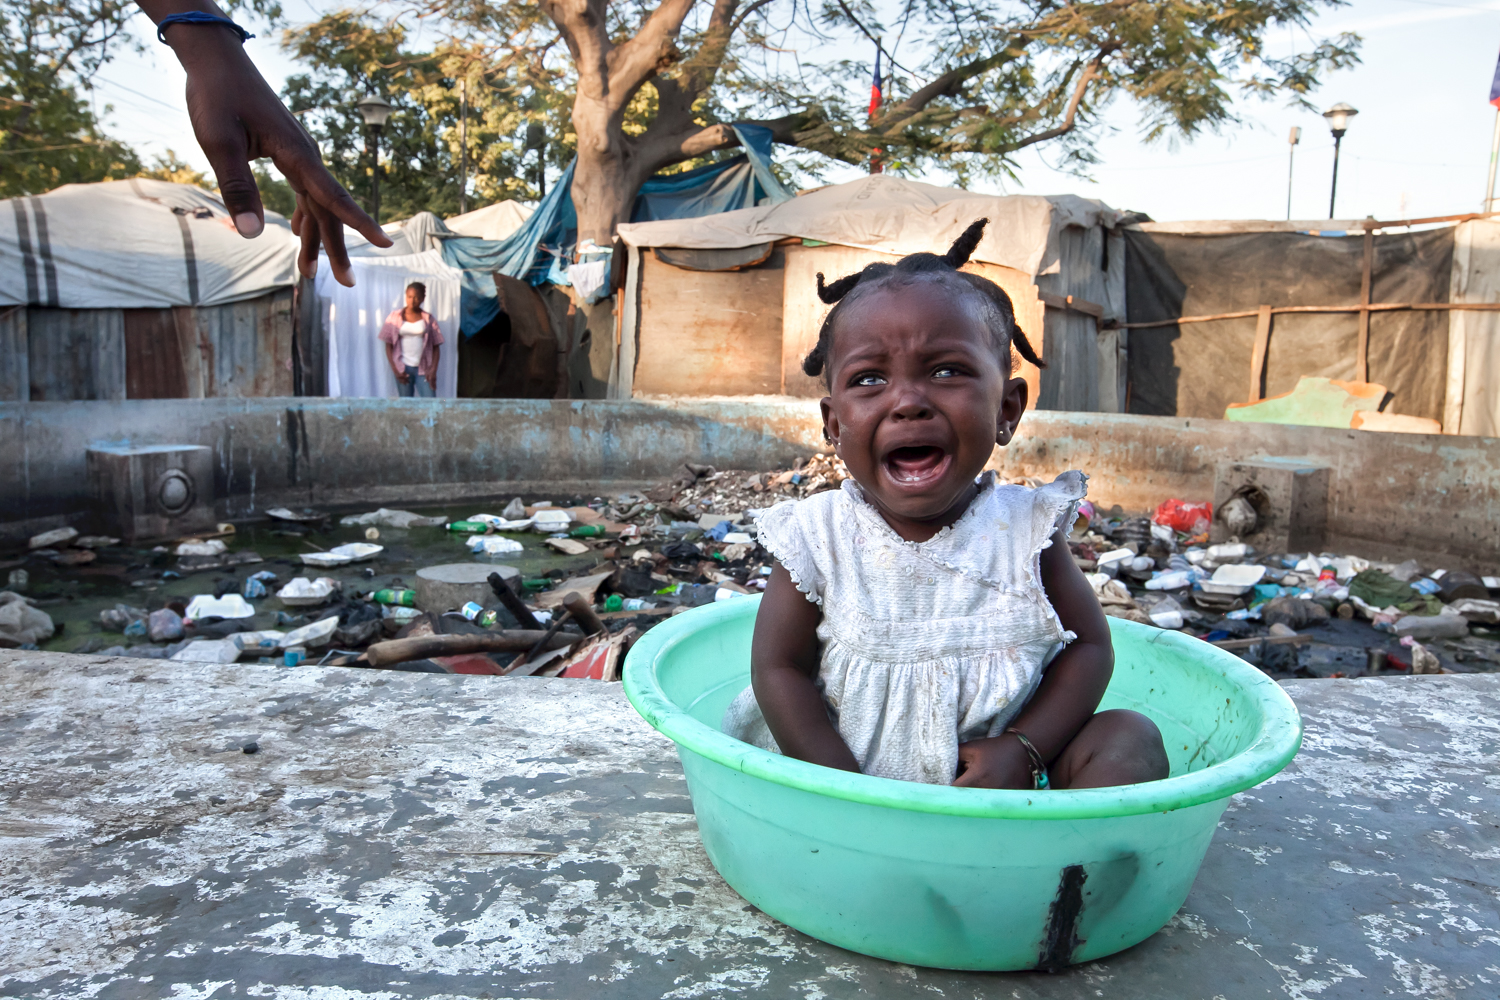 Many of Gramothe's residents have family members in Port-au-Prince and other large cities where the 2010 earthquake's consequences are still manifest almost everywhere.